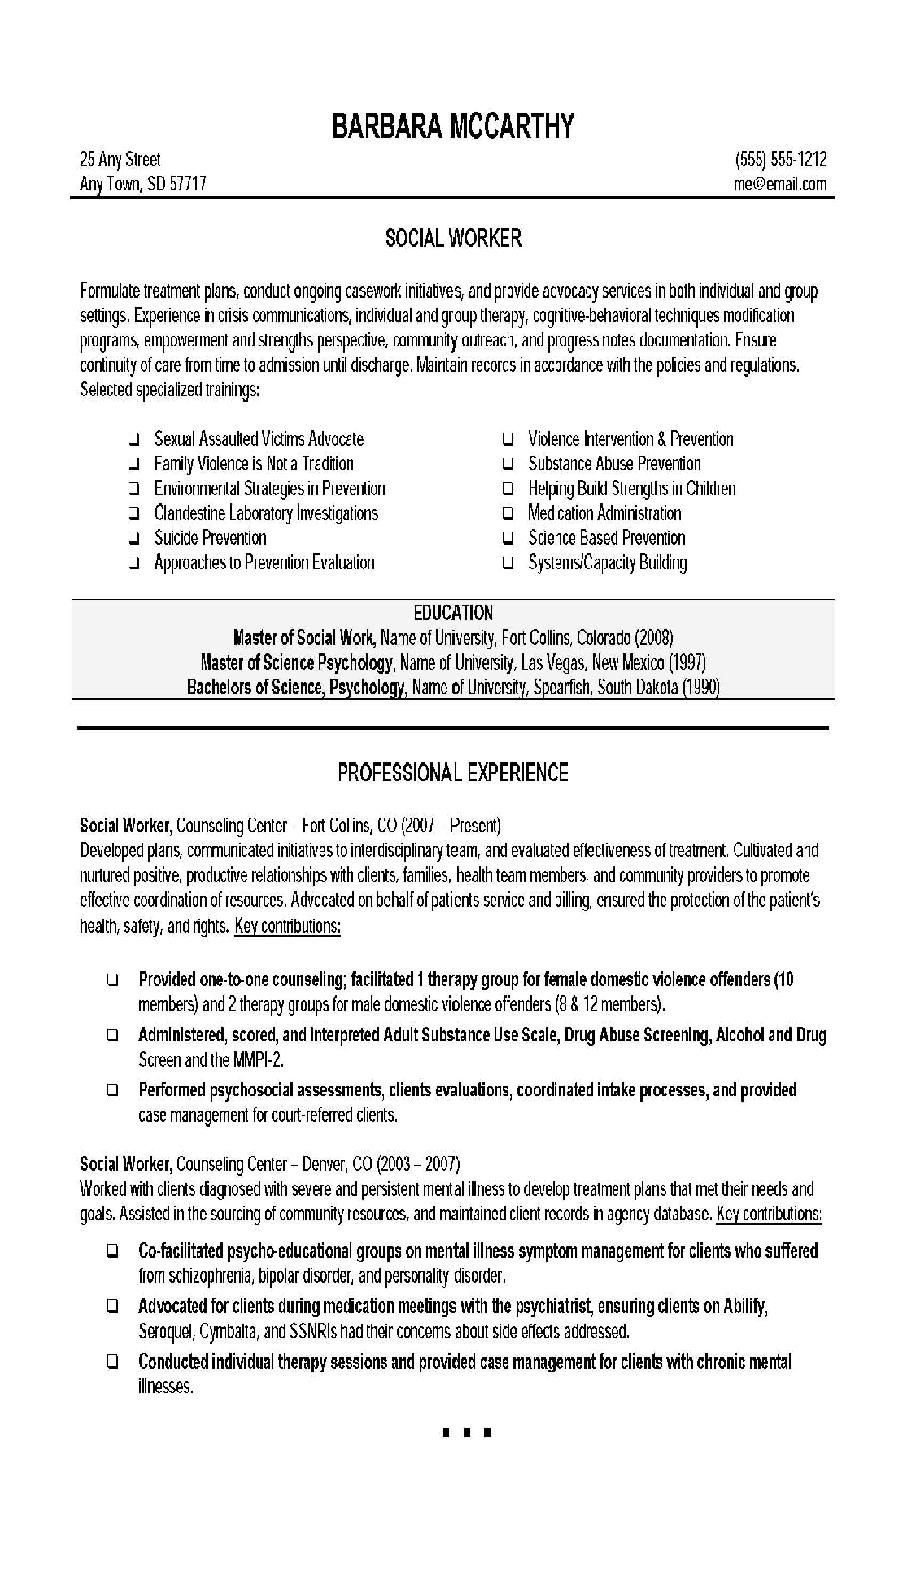 social worker resume 4 Social work, Social worker